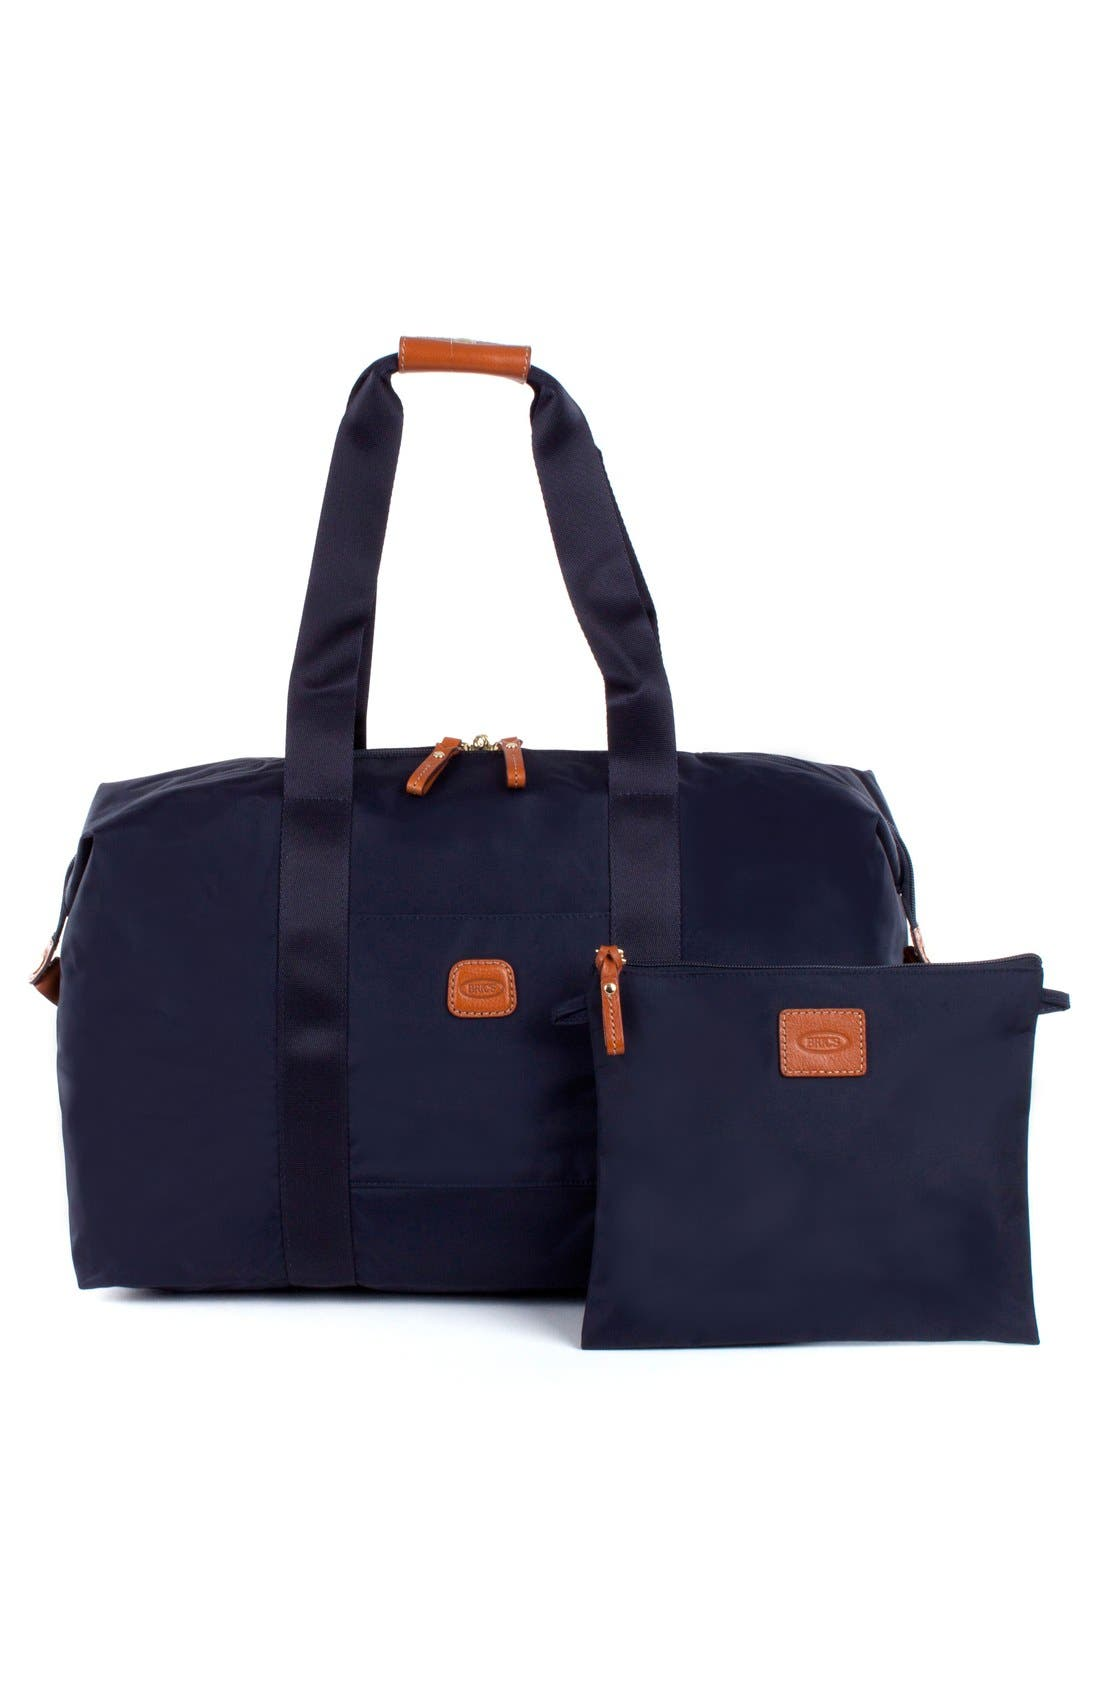 'X-Bag' Folding Duffel Bag,                             Alternate thumbnail 5, color,                             Navy